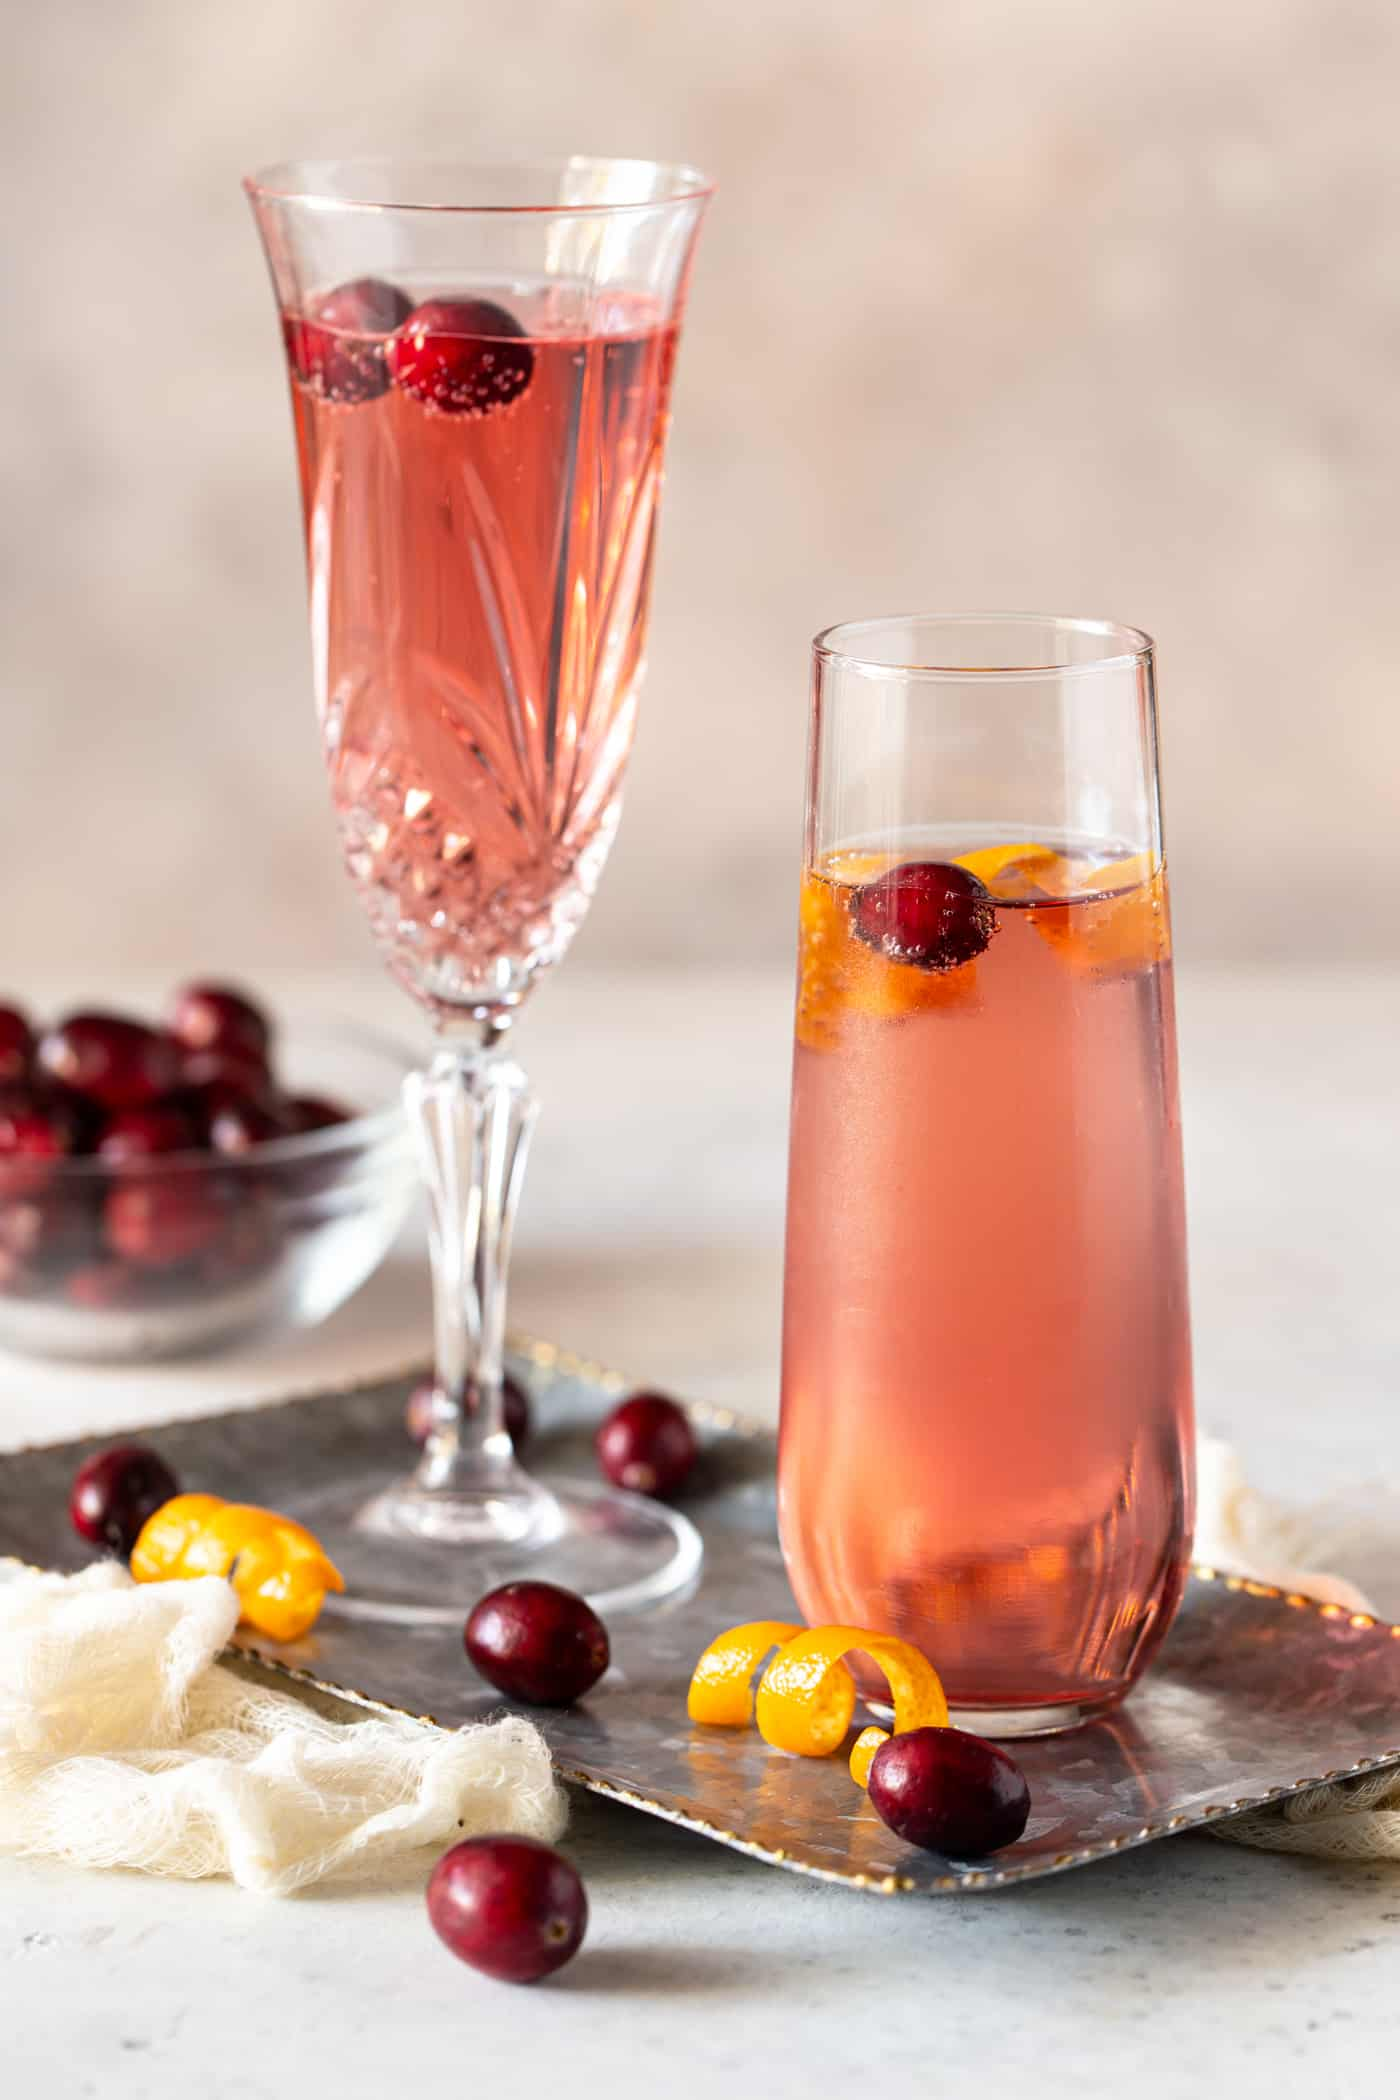 Cranberry Orange Prosecco Cocktails in champagne flutes on a silver tray with fresh cranberries for garnish.